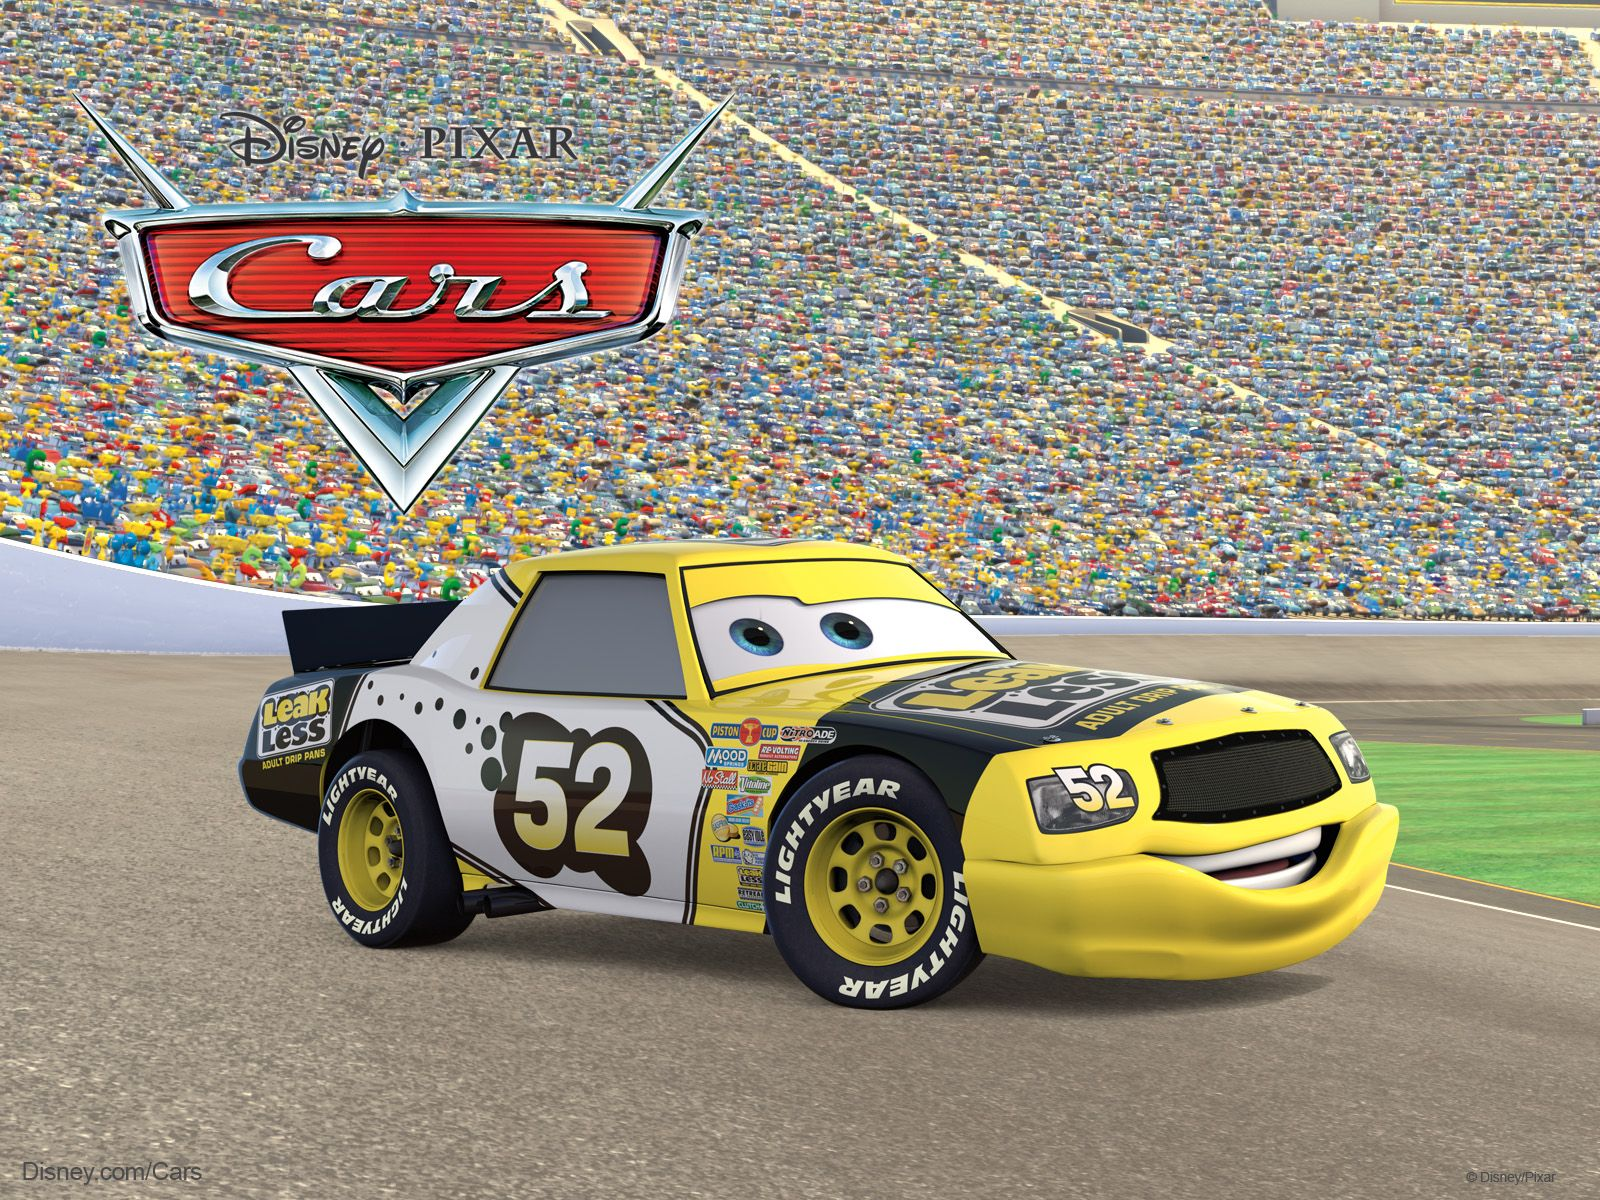 All Cars Characters Leakless The Race Car From Disney Pixar Move